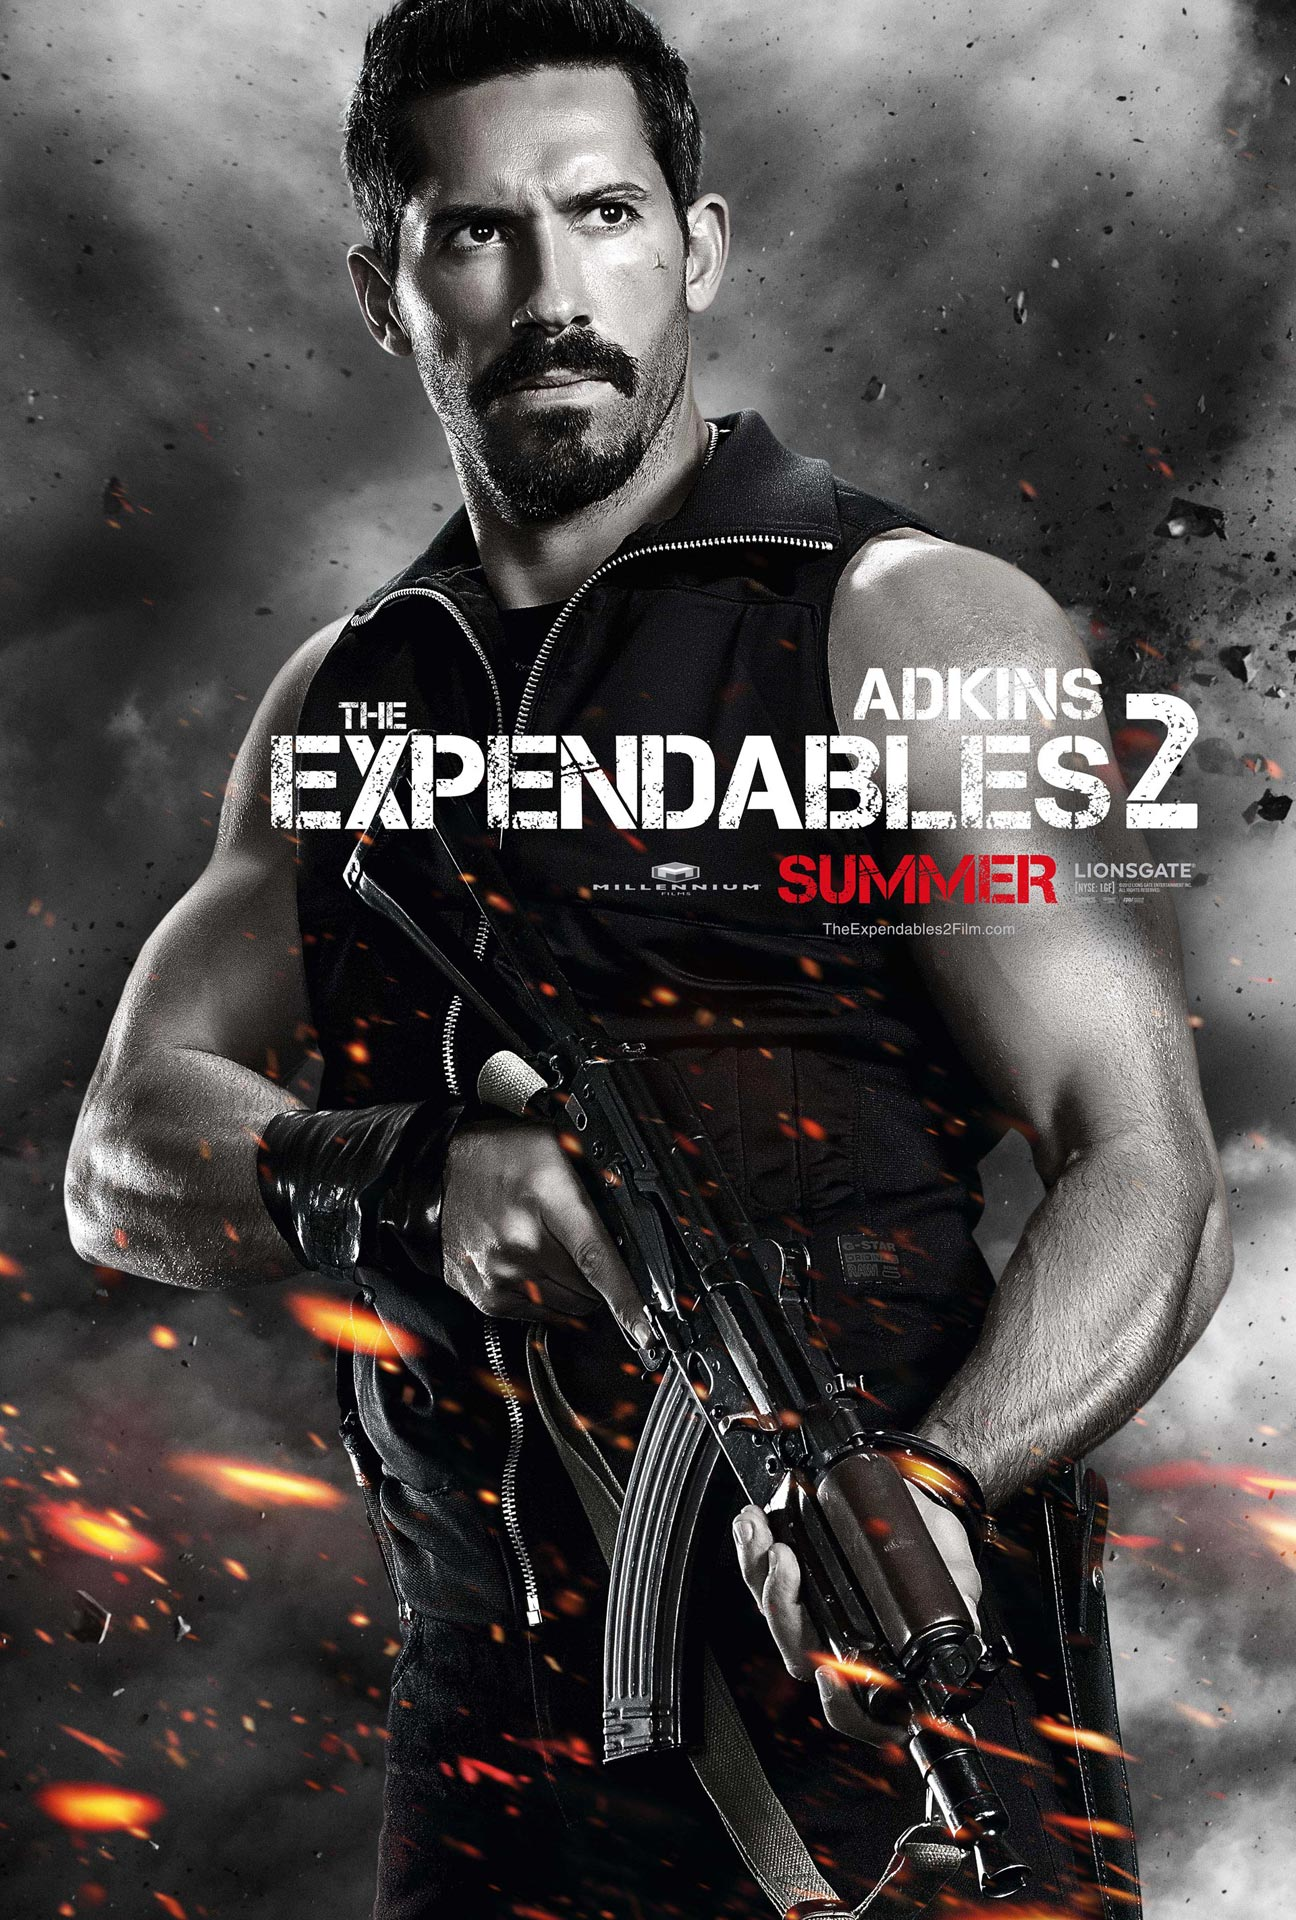 New THE EXPENDABLES 2 Character Poster: Scott Adkins is Lucky 13